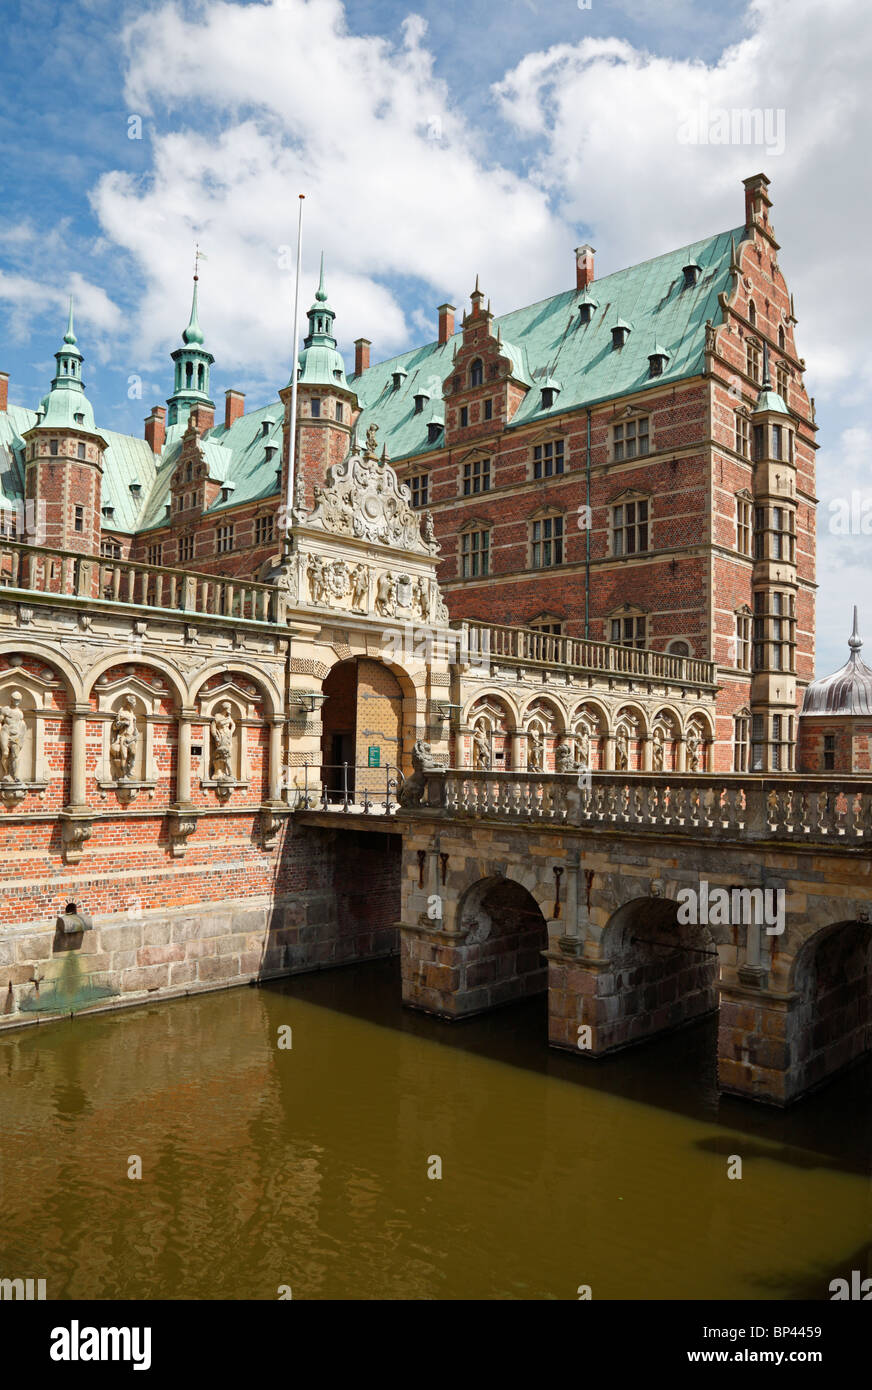 The entrance to the Frederiksborg Castle in Dutch Renaissance style over the moat in Hillerød near Copenhagen, - Stock Image